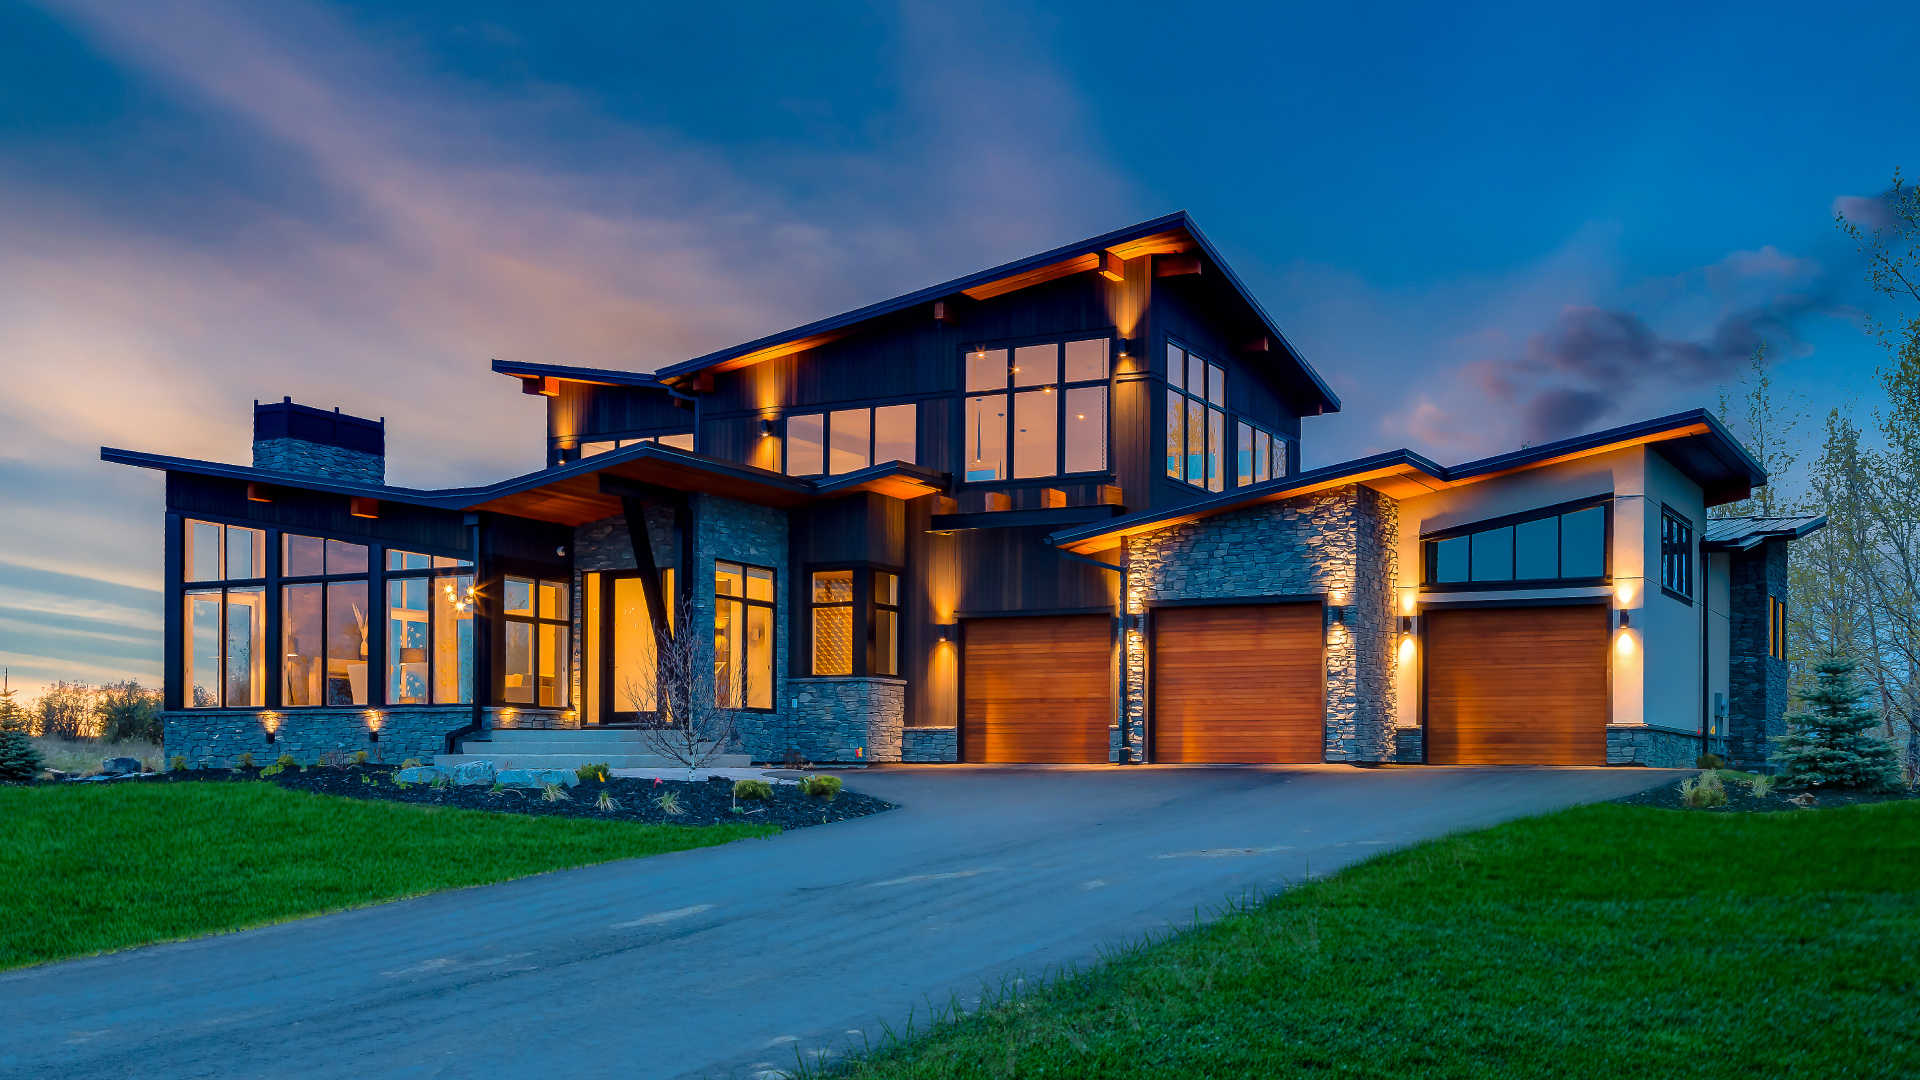 From The Exterior Of Your Home To The Bedrooms And Living Spaces, Your Custom  Home Design Will Be Entirely Your Own. Start With Perusing The West Ridge  Fine ...